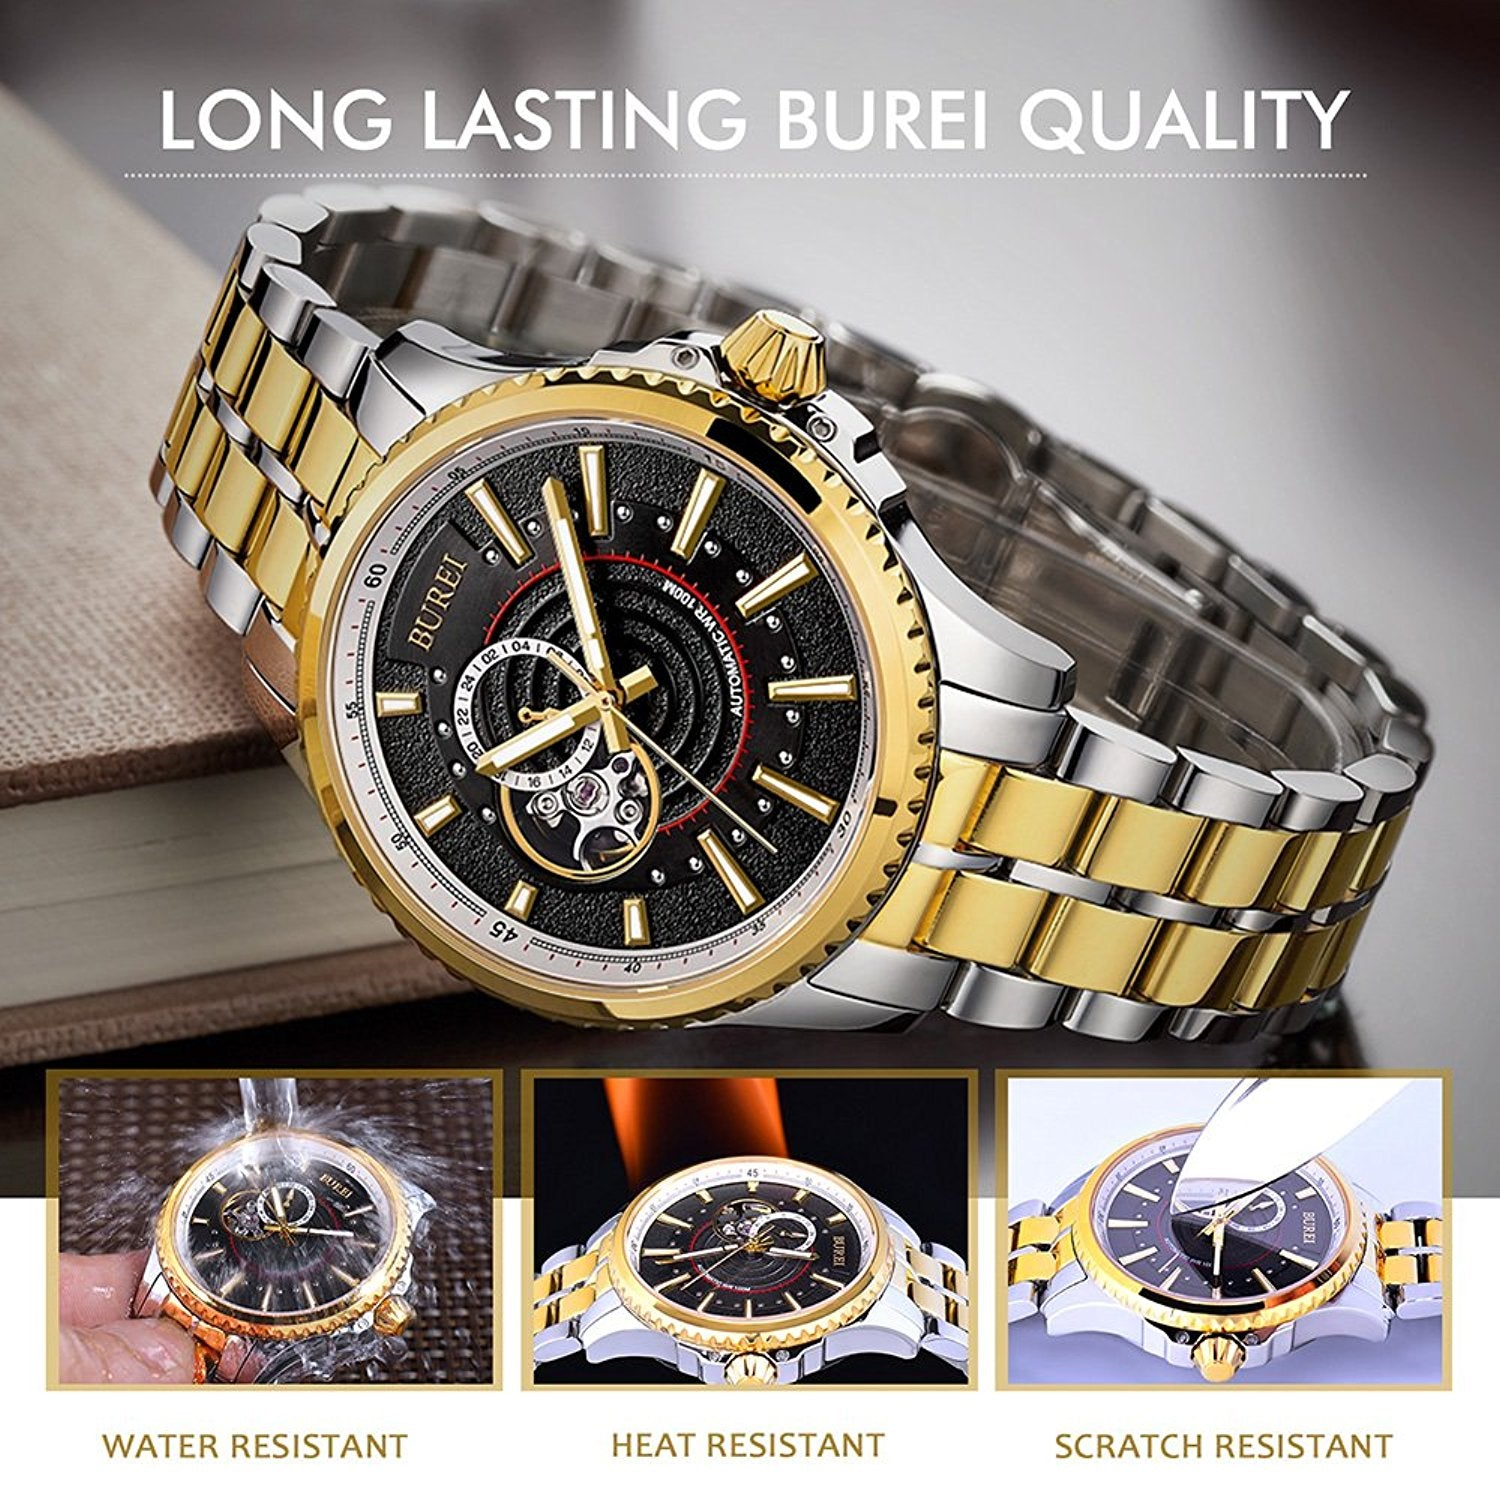 products mul rose with case k gold date men mens luxury stainless watches quality watch dress chronograph waterproof steel wrist